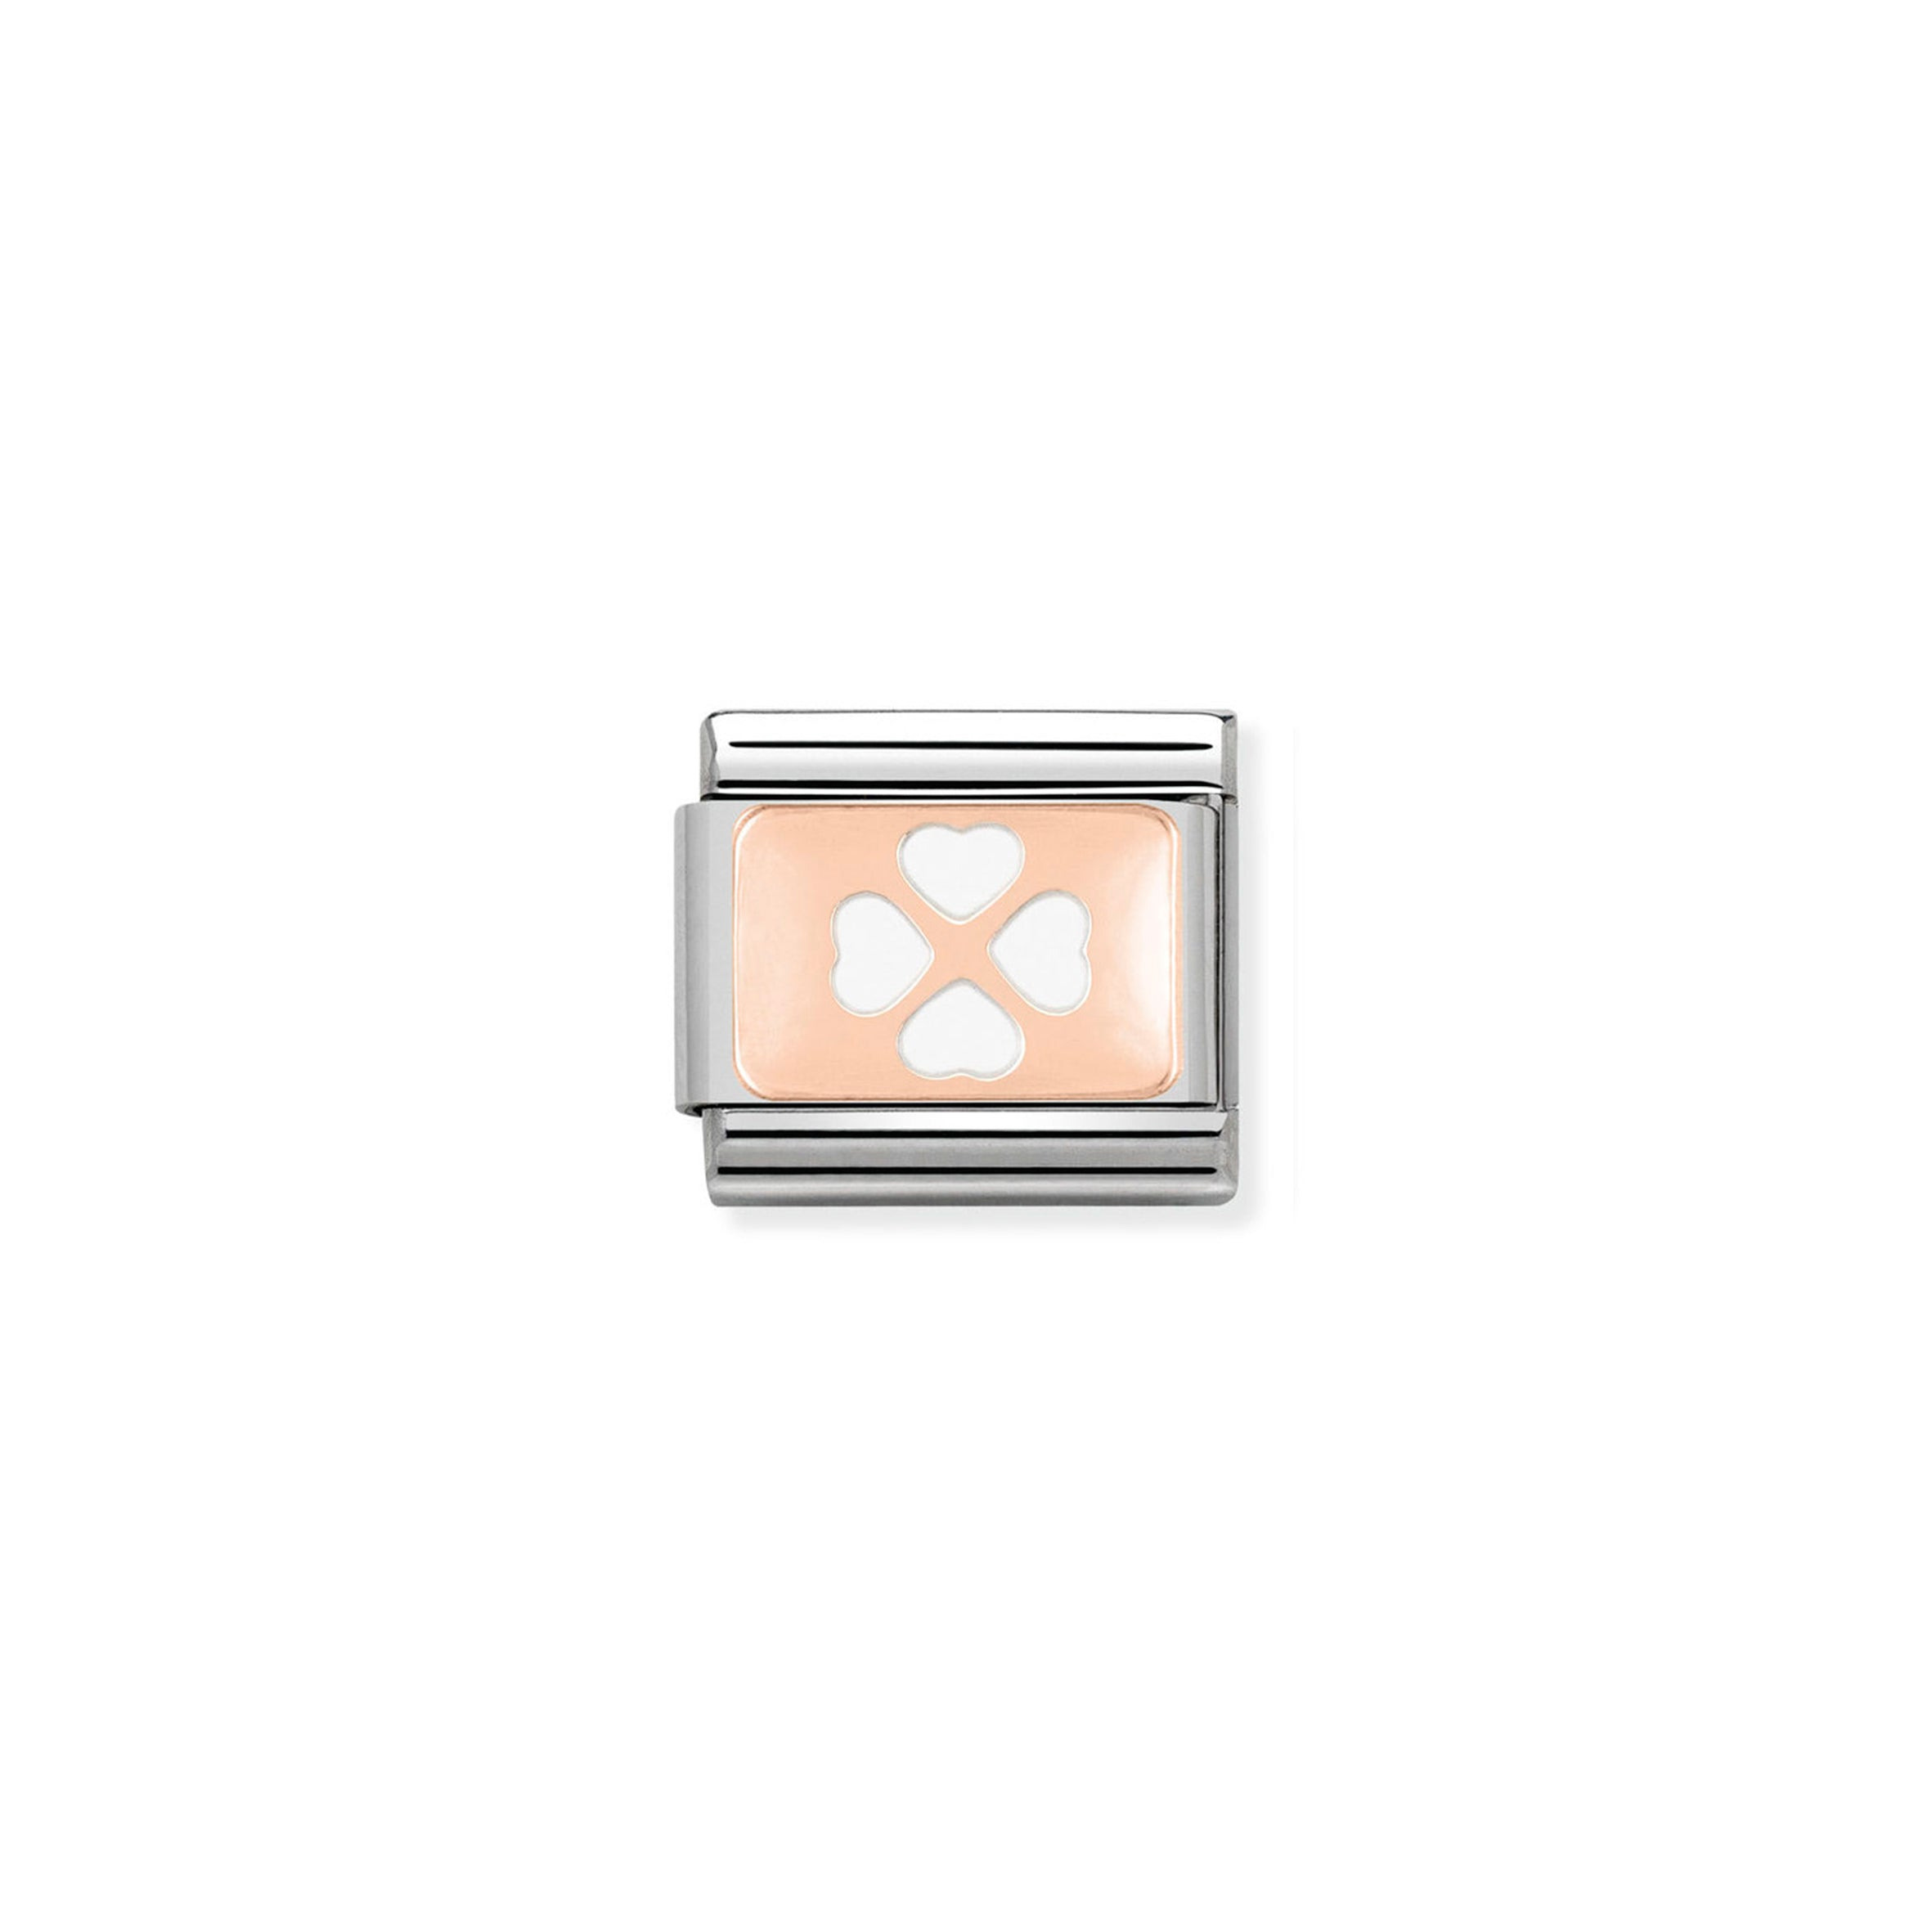 NOMINATION - Composable 430201 07 Classic PLATES st/steel, enamel & 9ct rose gold (White Four Leaf Clover)